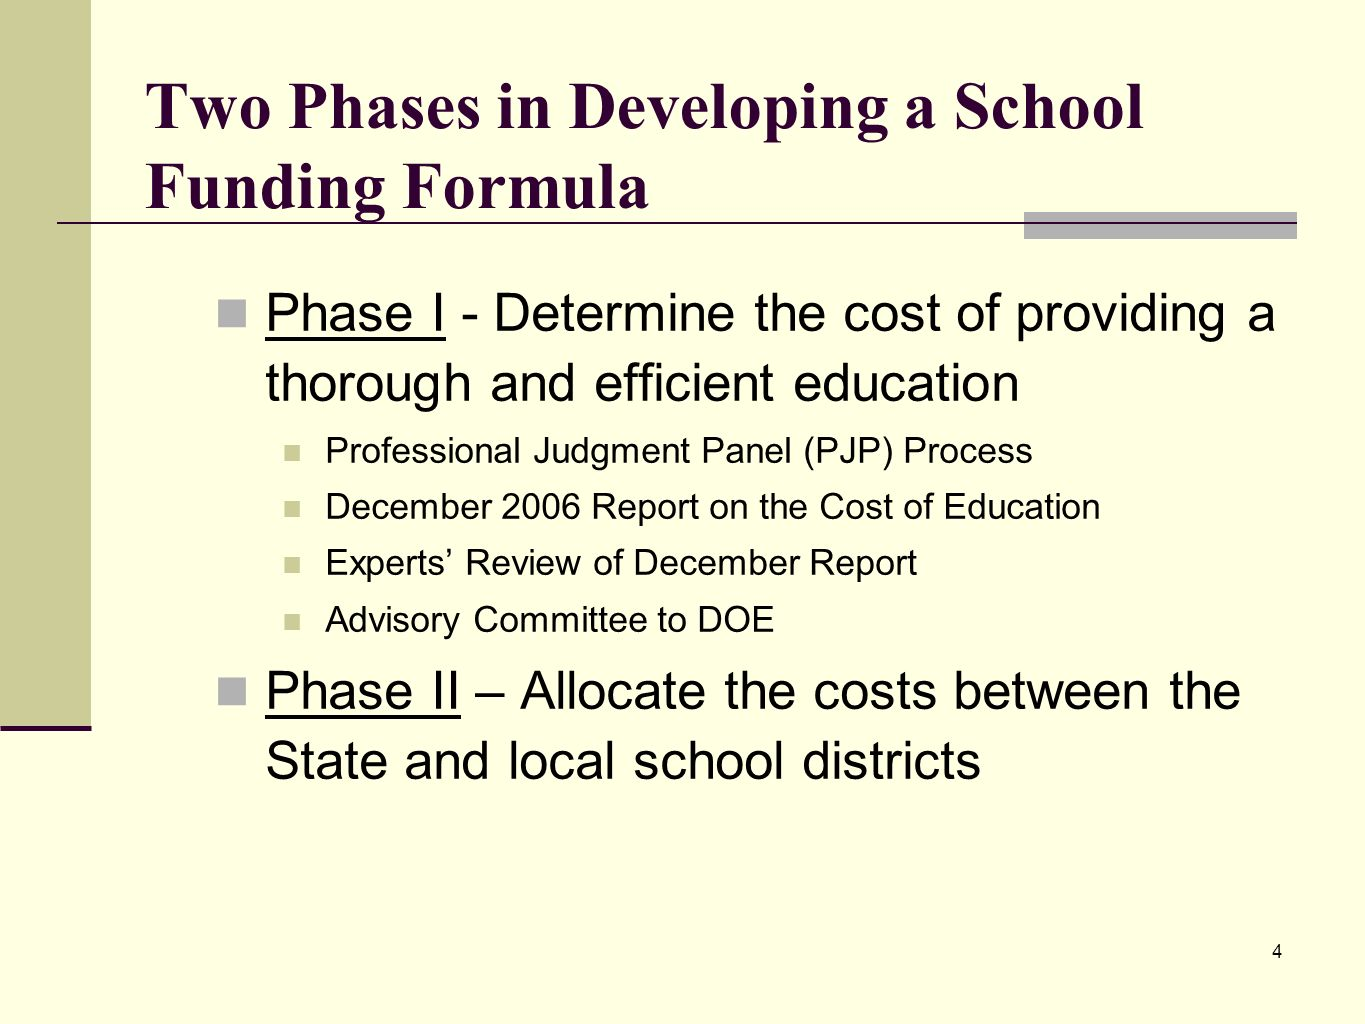 4 Two Phases in Developing a School Funding Formula Phase I - Determine the cost of providing a thorough and efficient education Professional Judgment Panel (PJP) Process December 2006 Report on the Cost of Education Experts Review of December Report Advisory Committee to DOE Phase II – Allocate the costs between the State and local school districts